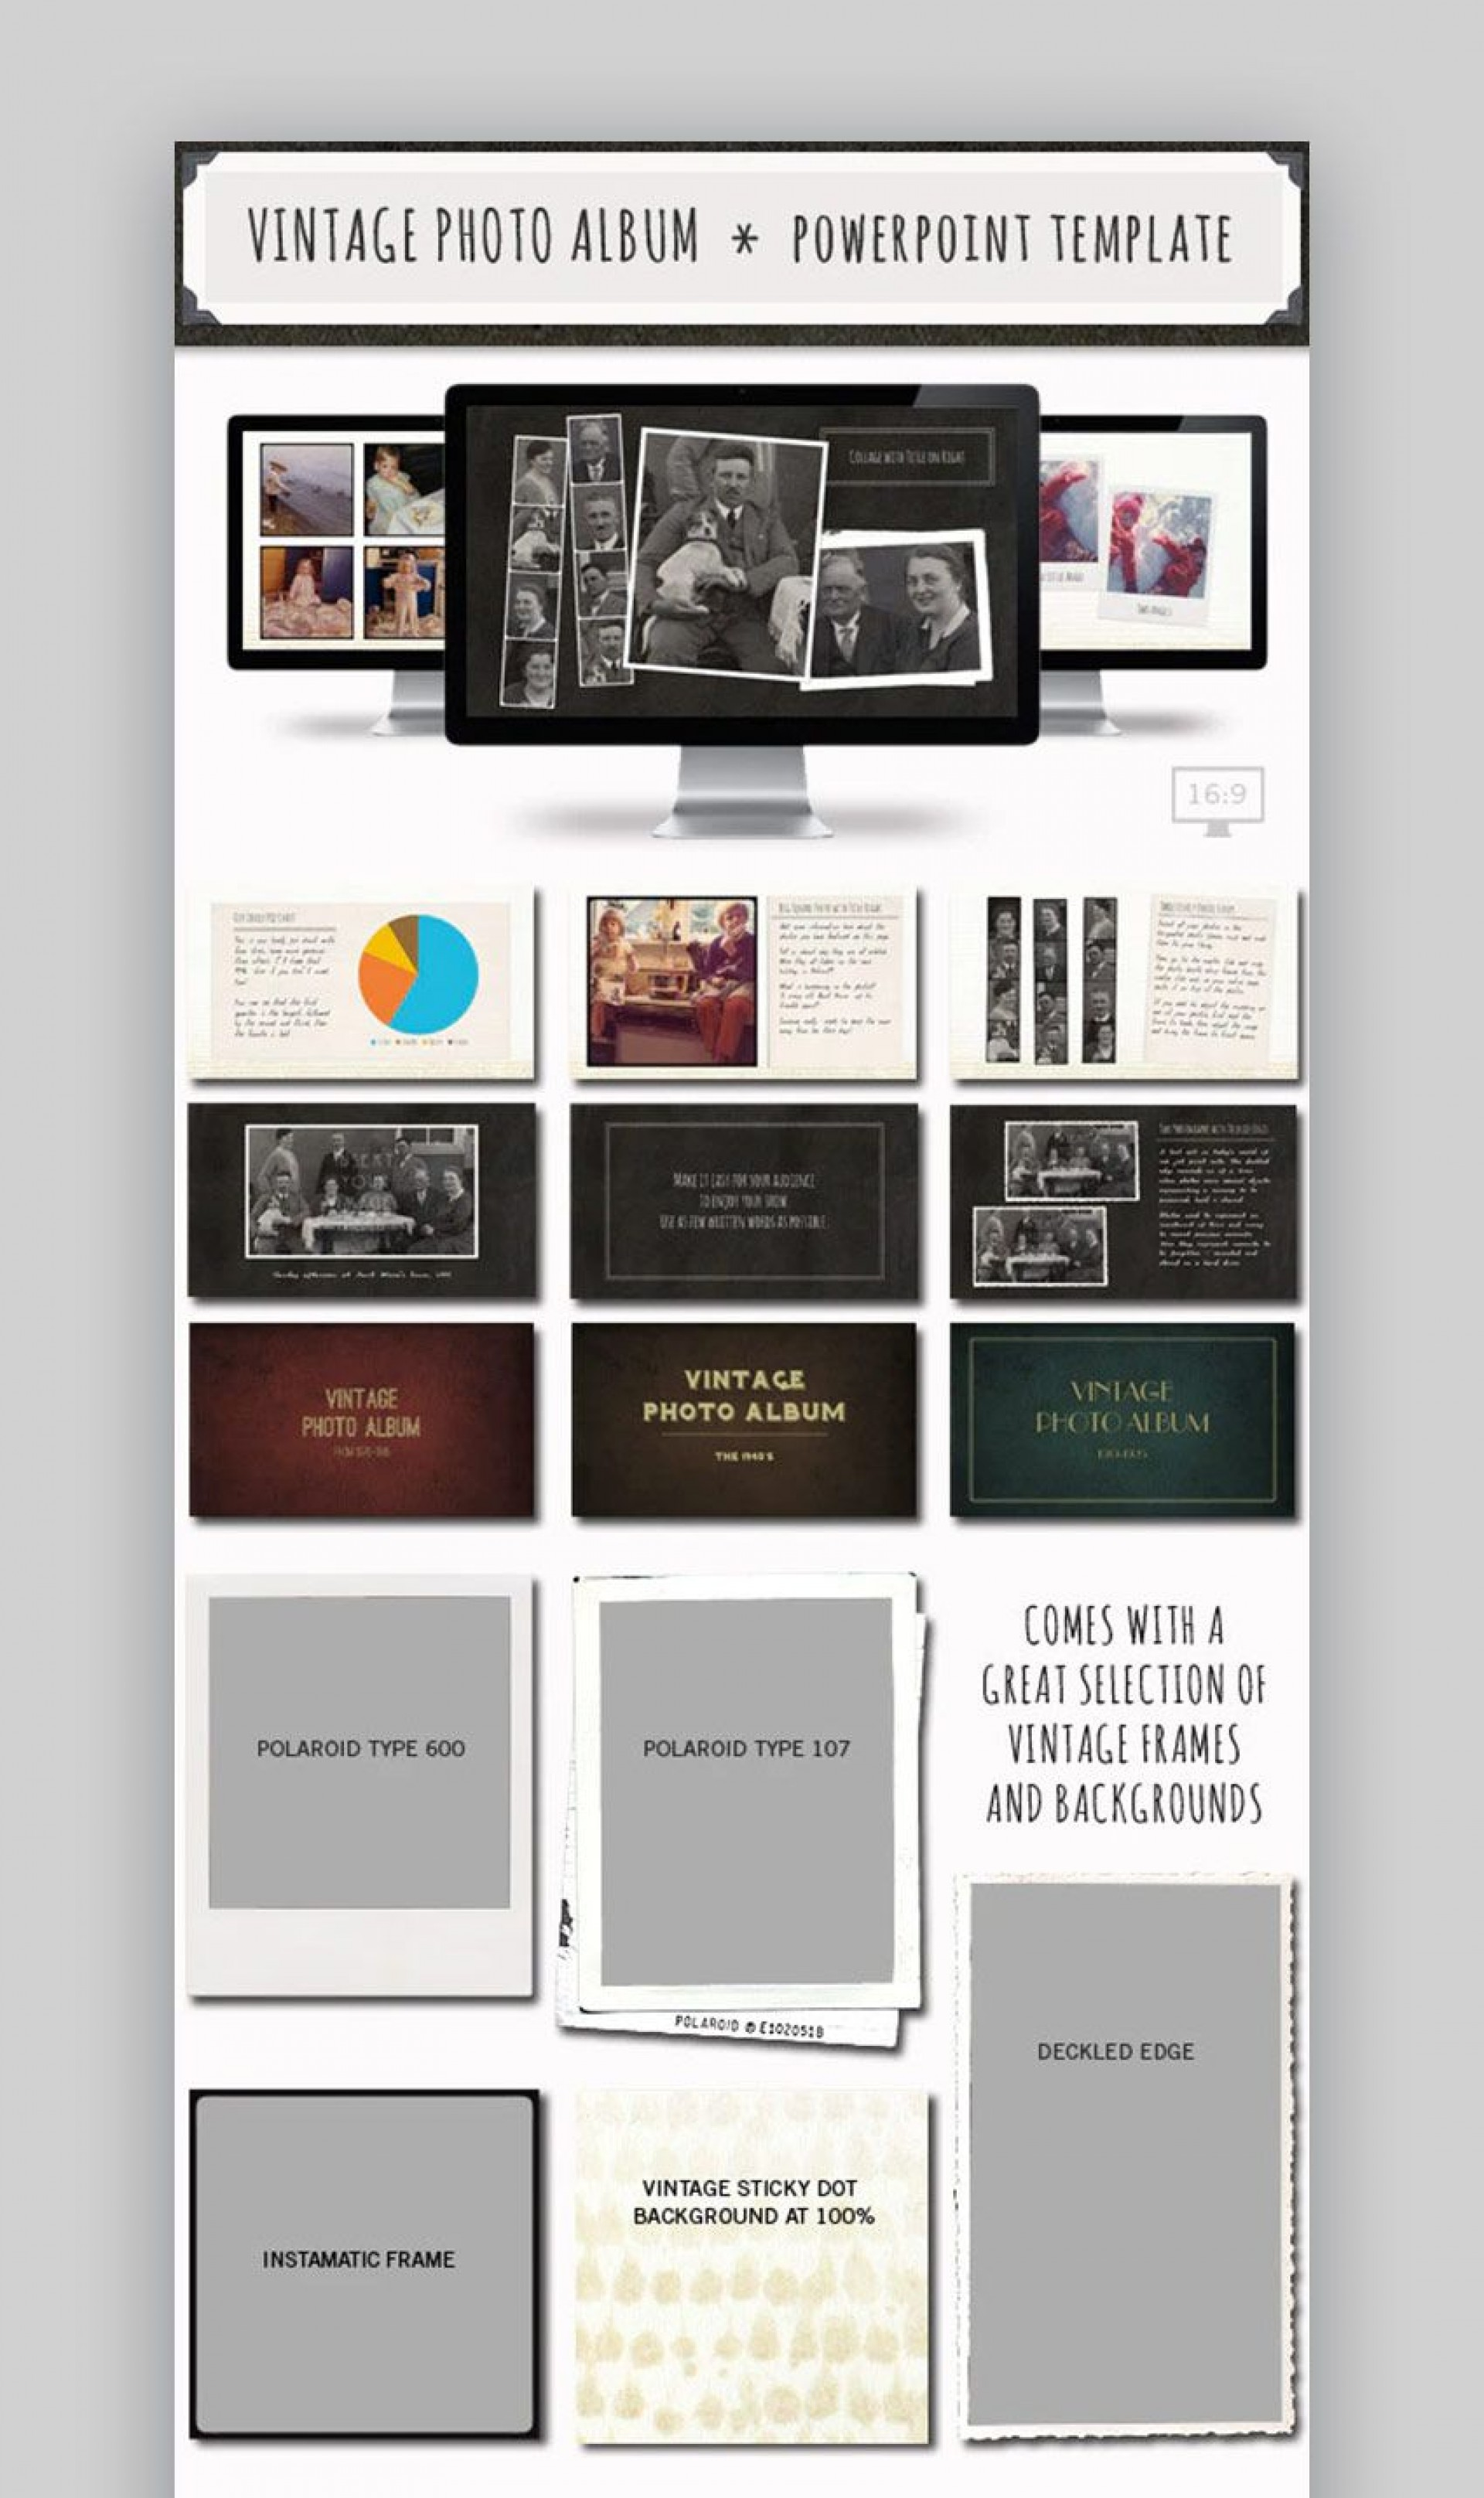 000 Singular In Loving Memory Powerpoint Template Free High Definition 1920